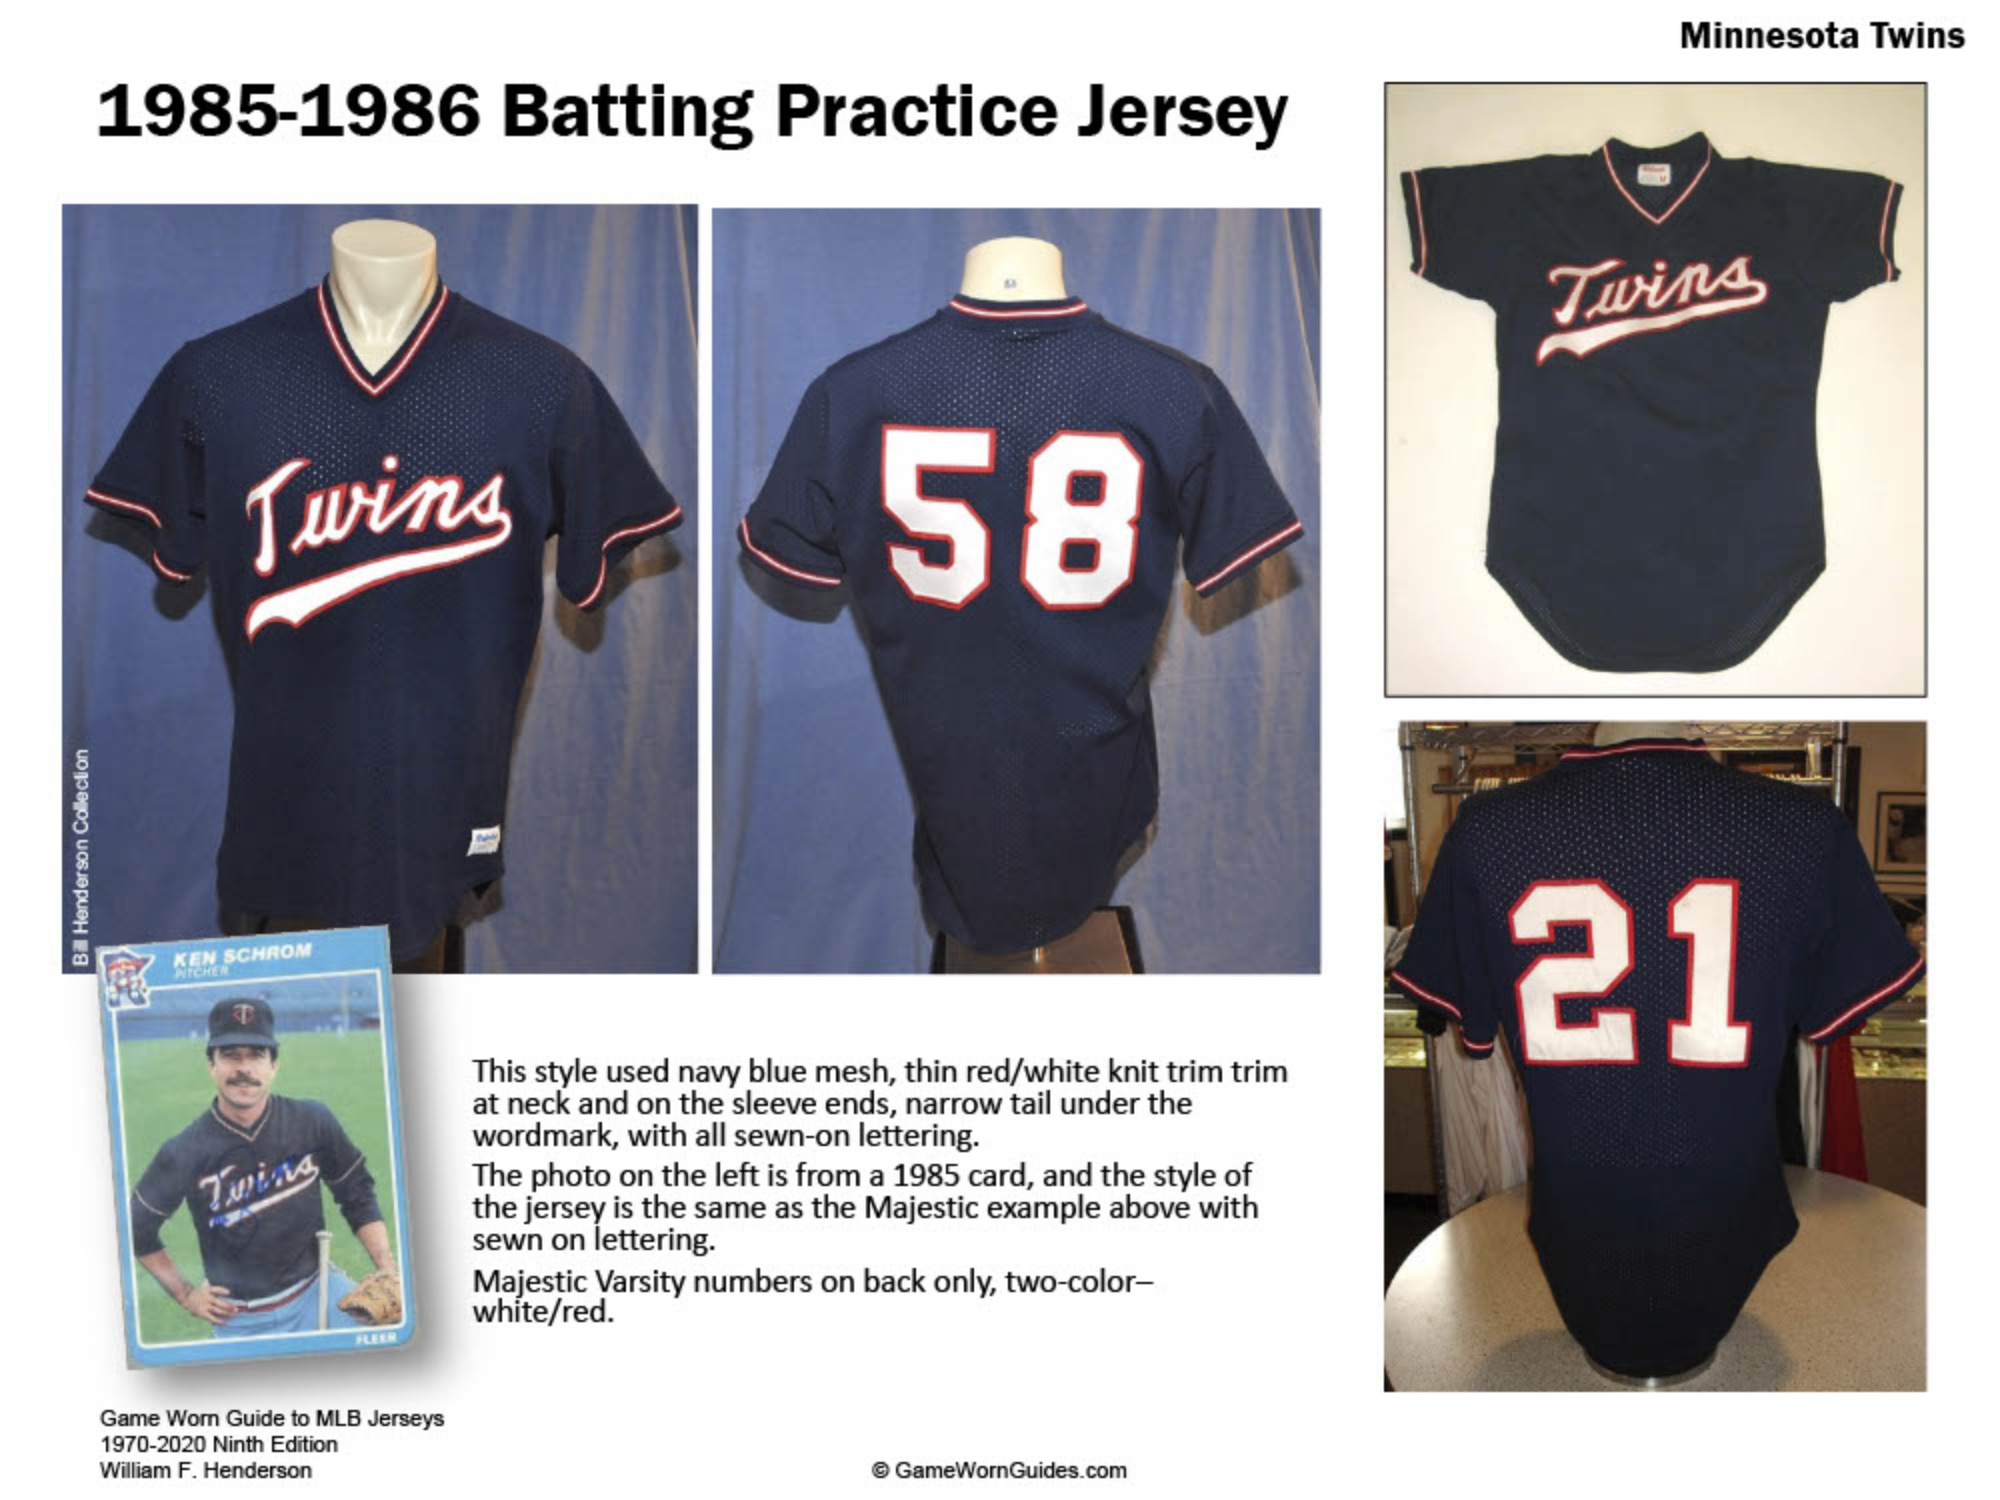 Game Worn Guide to Minnesota Twins Jerseys (1970-2020)